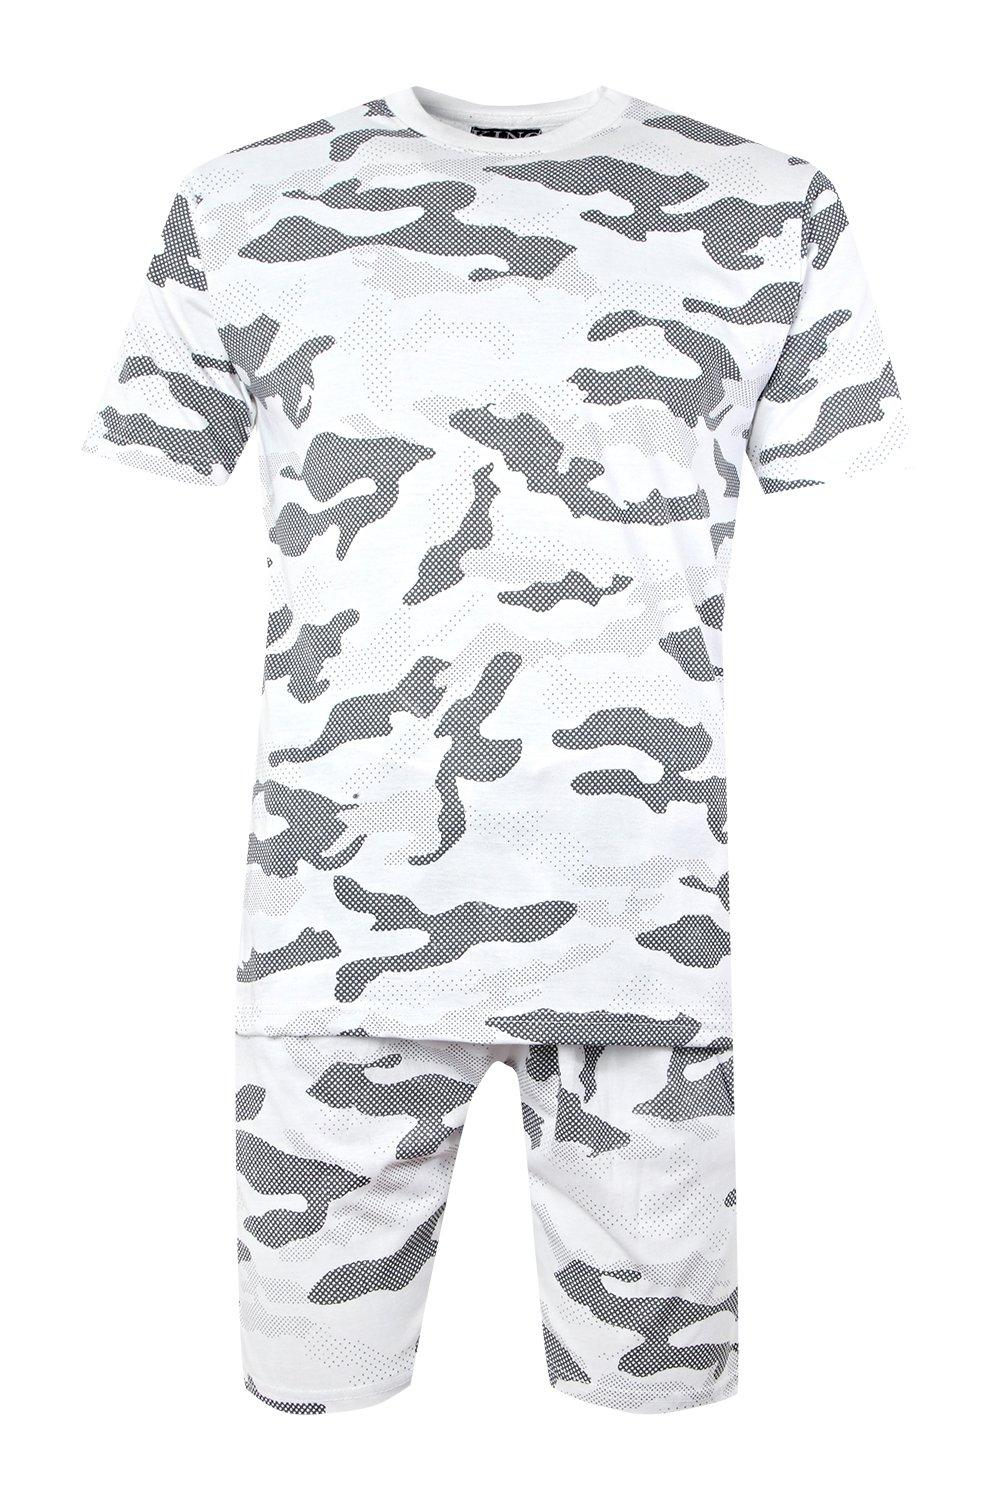 980495a7 Mens White Camo T-Shirt And Short Set. Hover to zoom. Close video